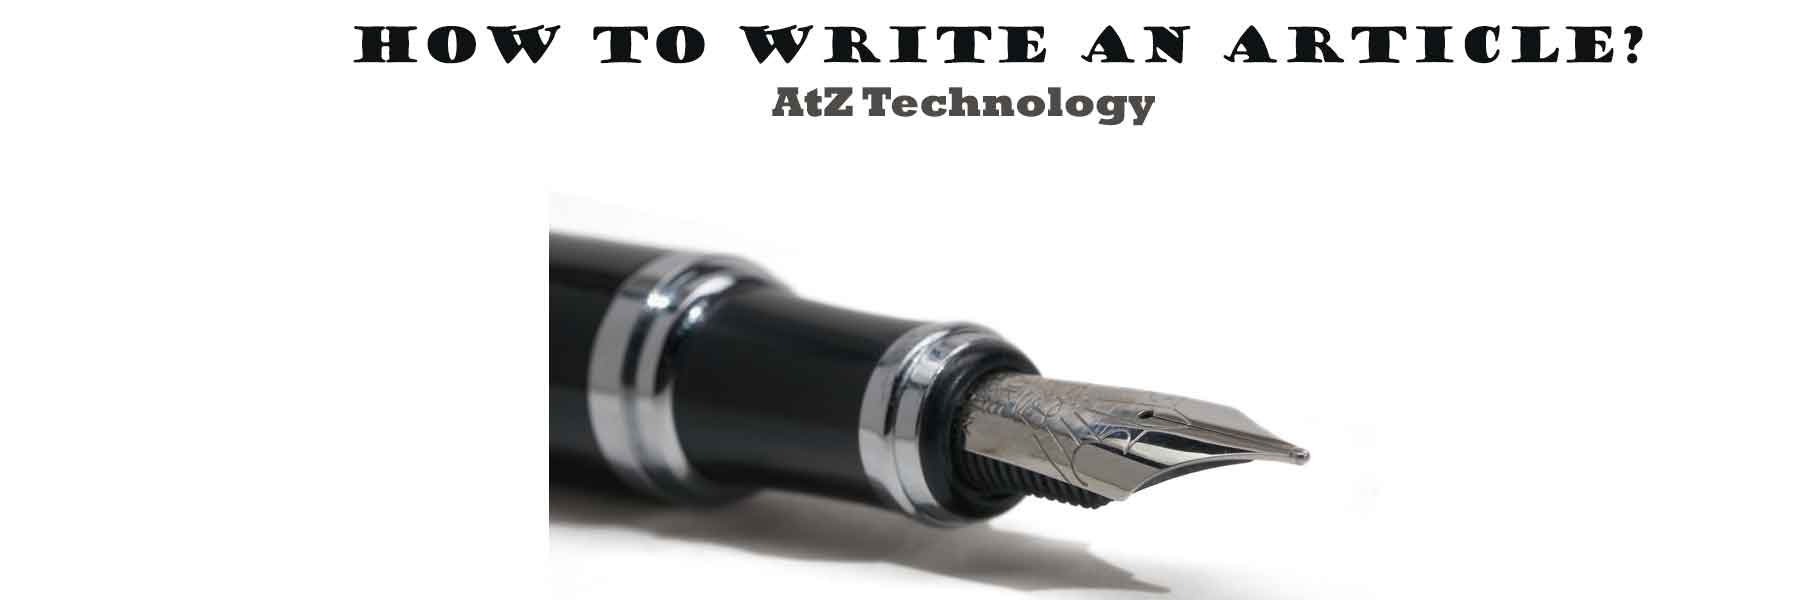 How to Write an Article?